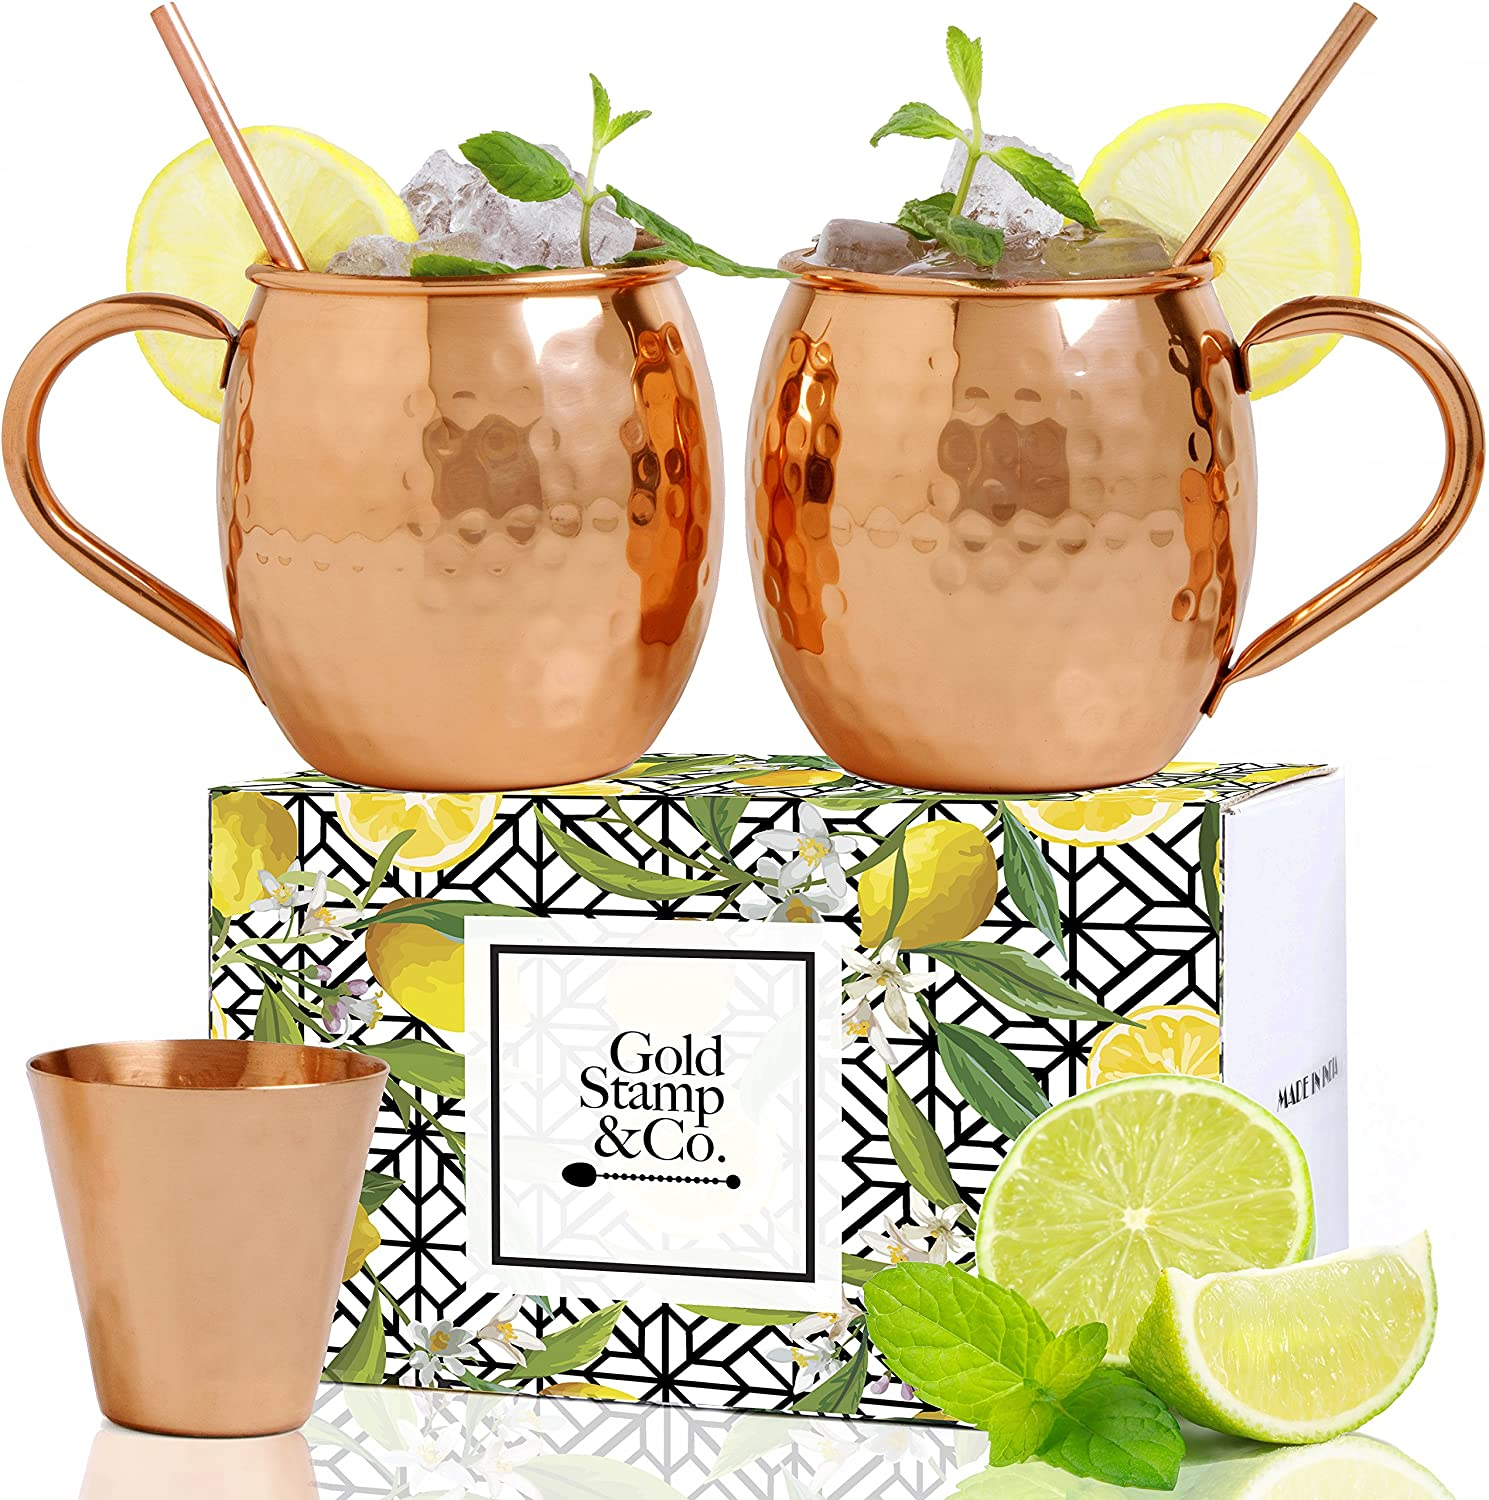 Gold Stamp & Co Quality Moscow Mule Mugs Set: 2 Hammered 100% PURE Copper 16 Oz Cups plus 2 Copper Straws and 1 Shot Glass, Exceptional Craftsmanship